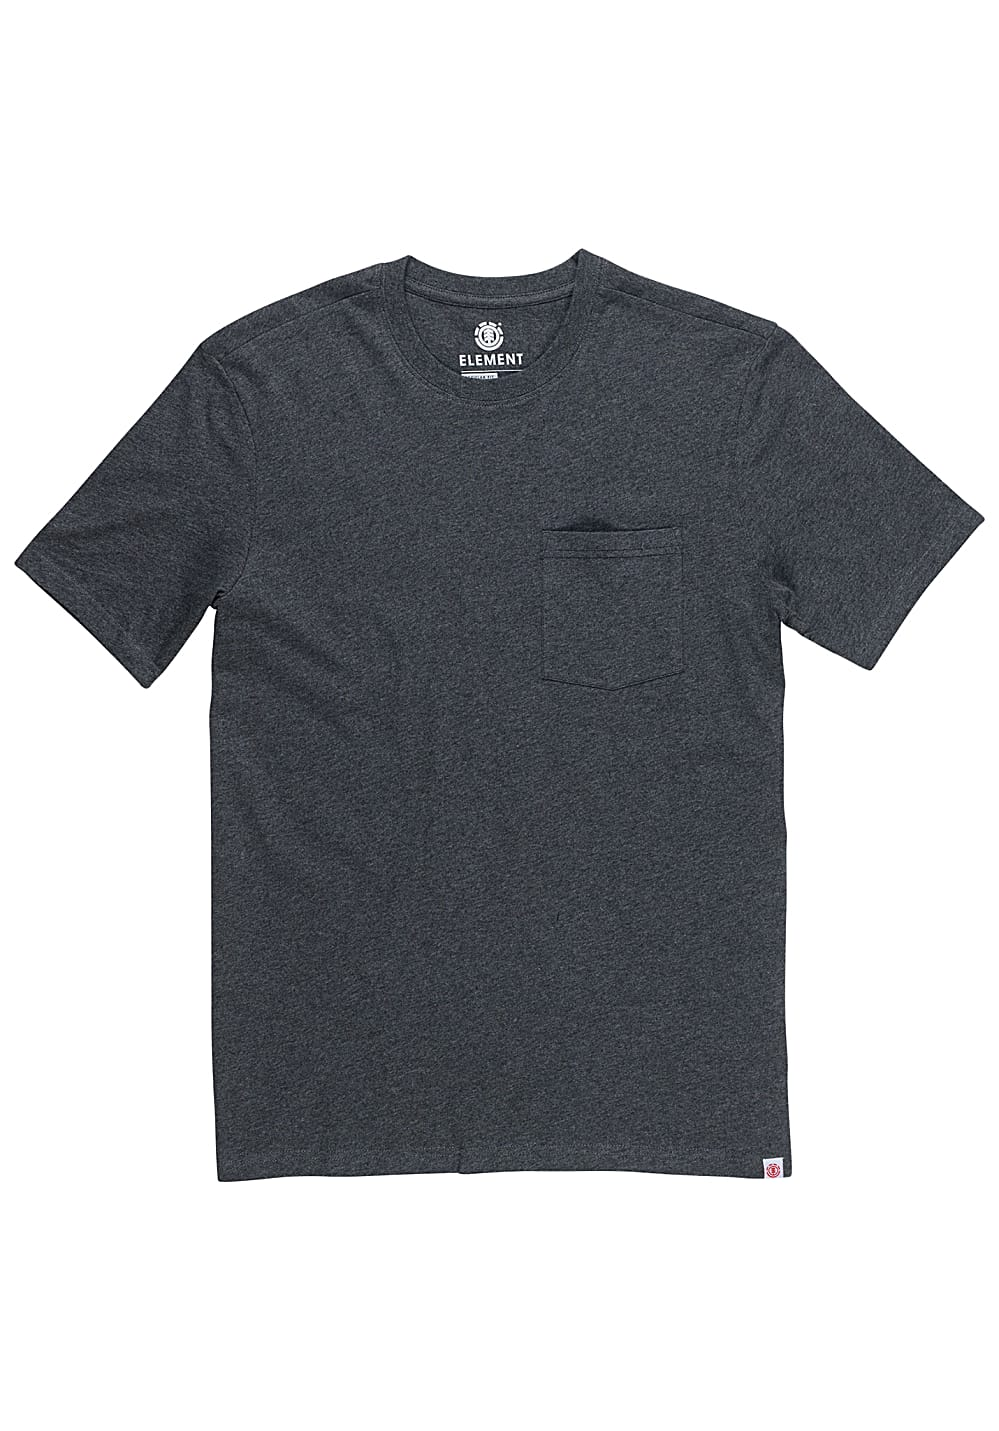 Element Basic Pocket Crew - T-Shirt für Herren Grau